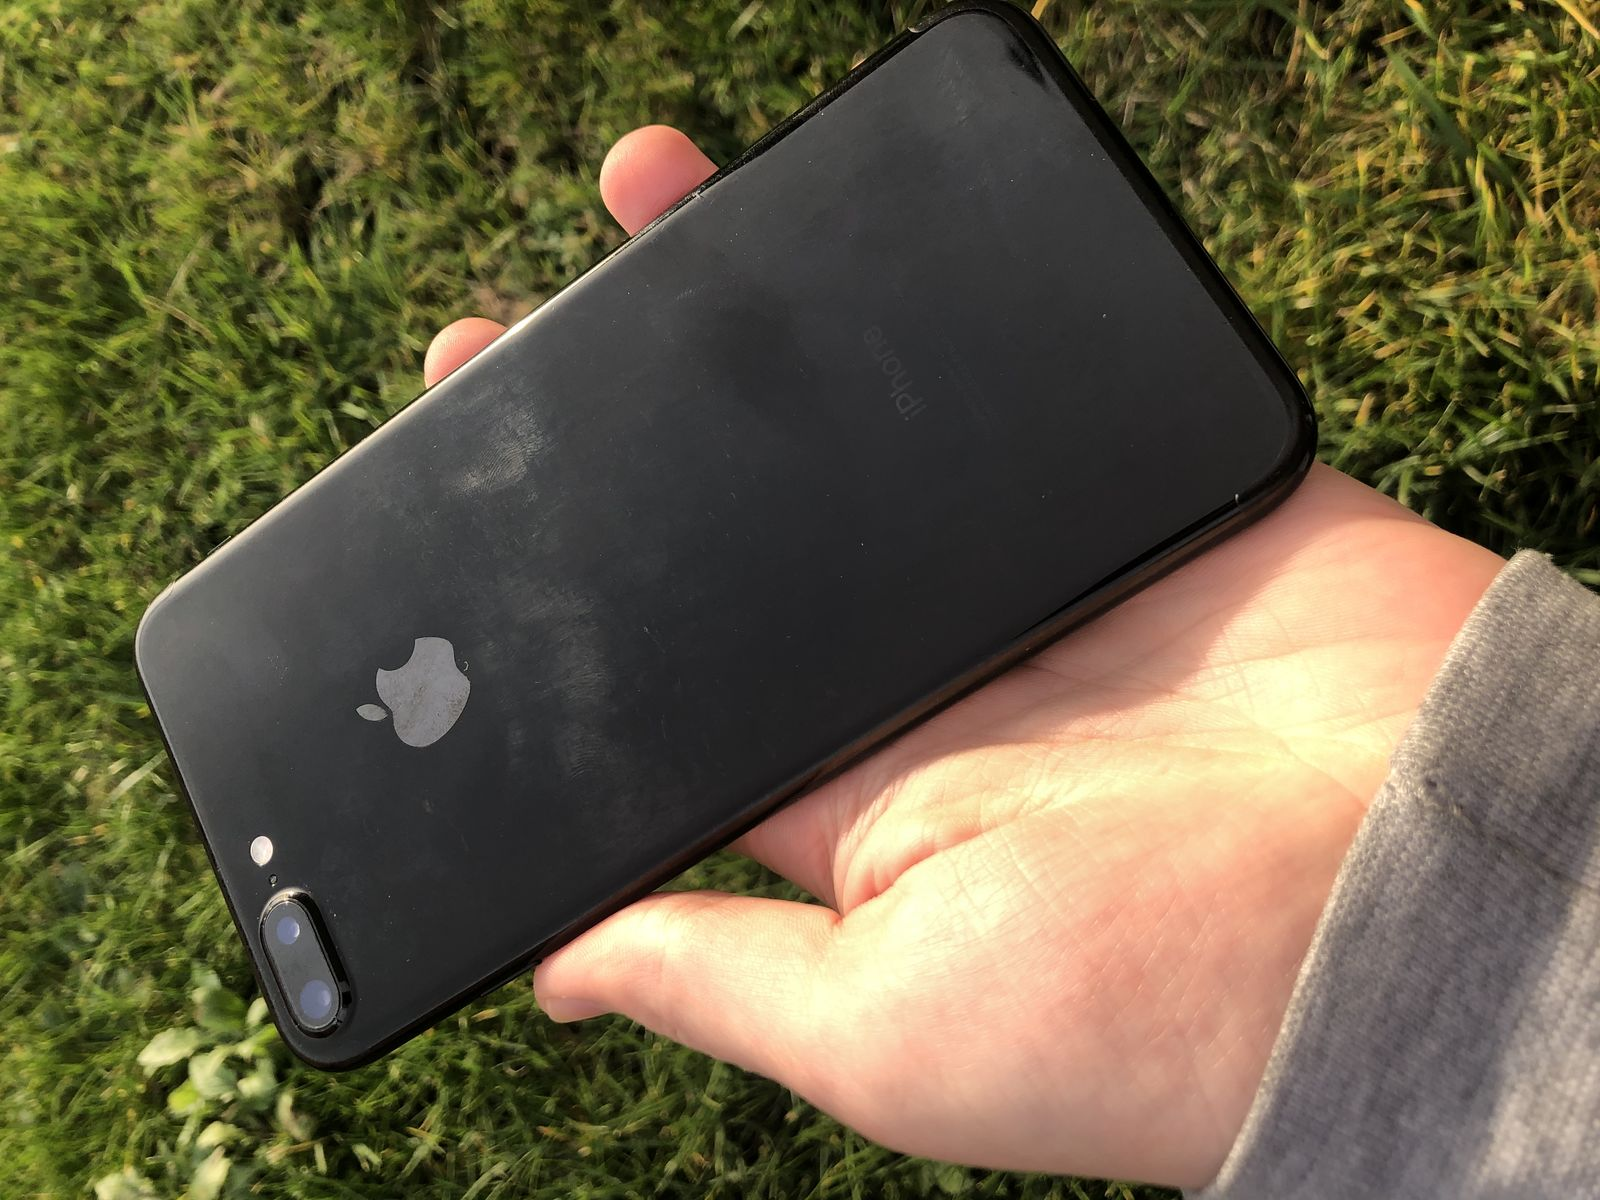 iPhone 7PLUS 256GB Neverlock Jet Black наушники в комплекті!